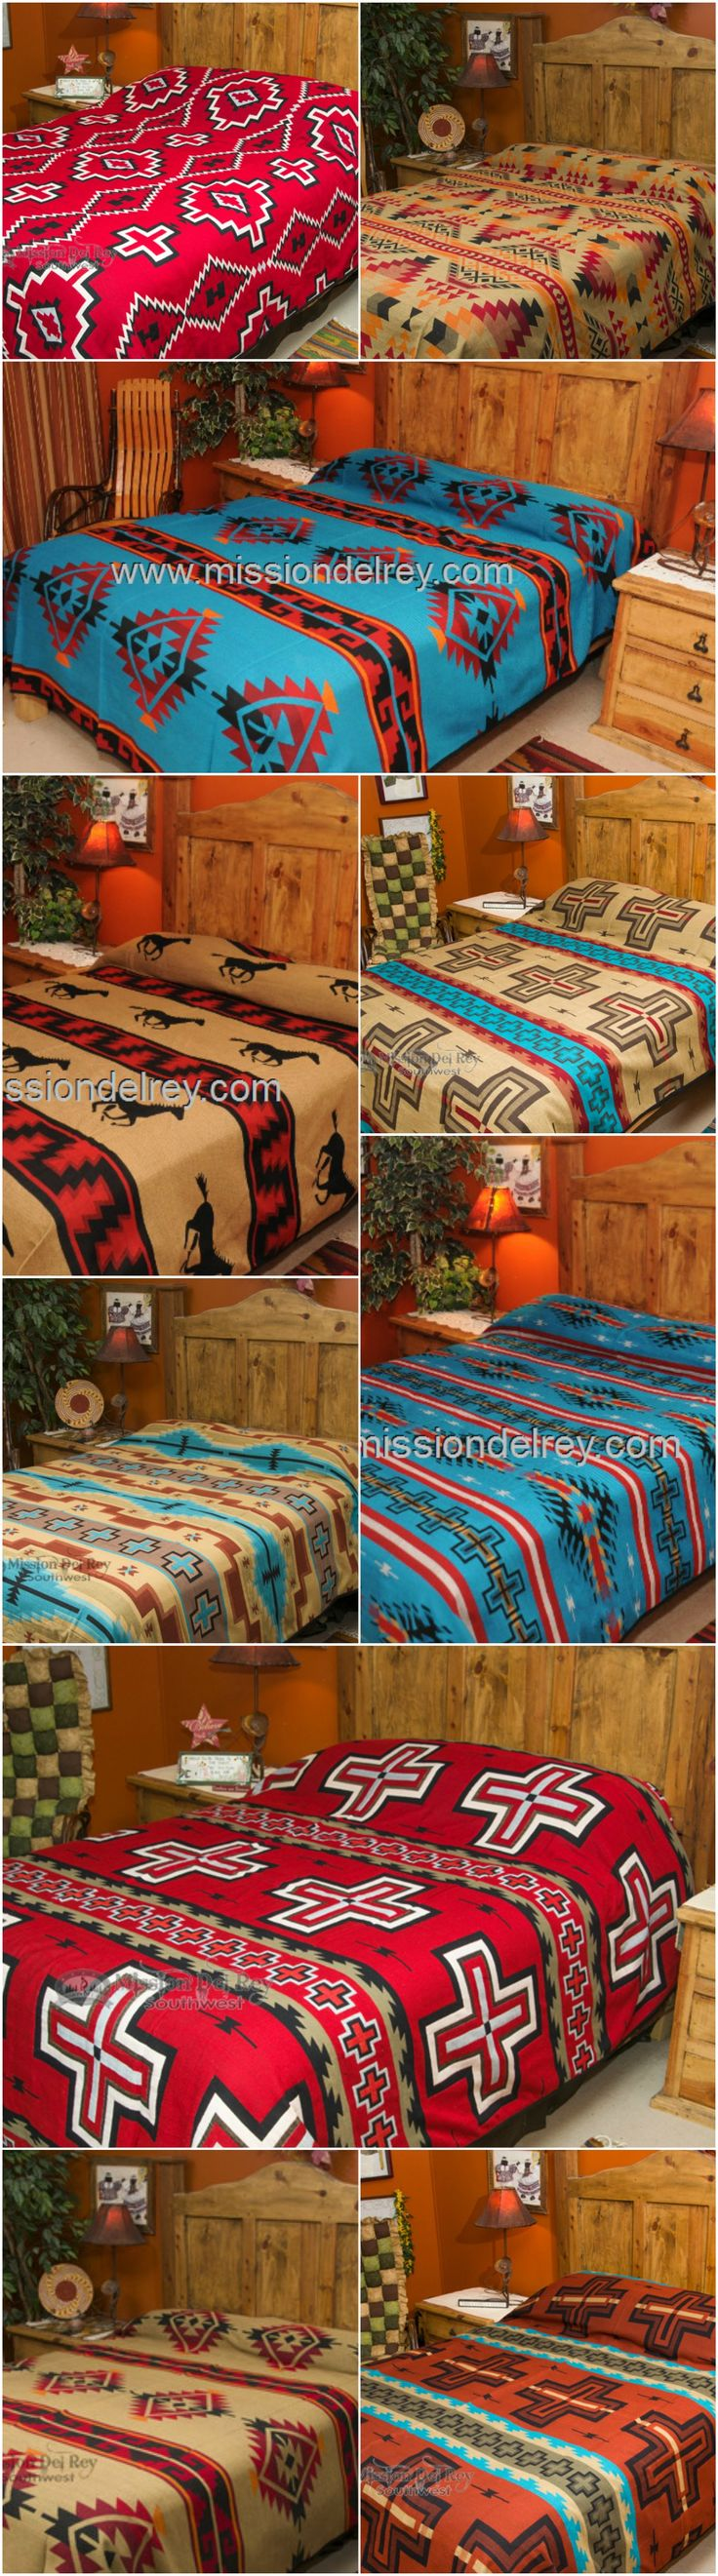 Arts and crafts style bedding - Dress Up Any Room With Great Western Style By Simply Adding A Western Bedspread From Our